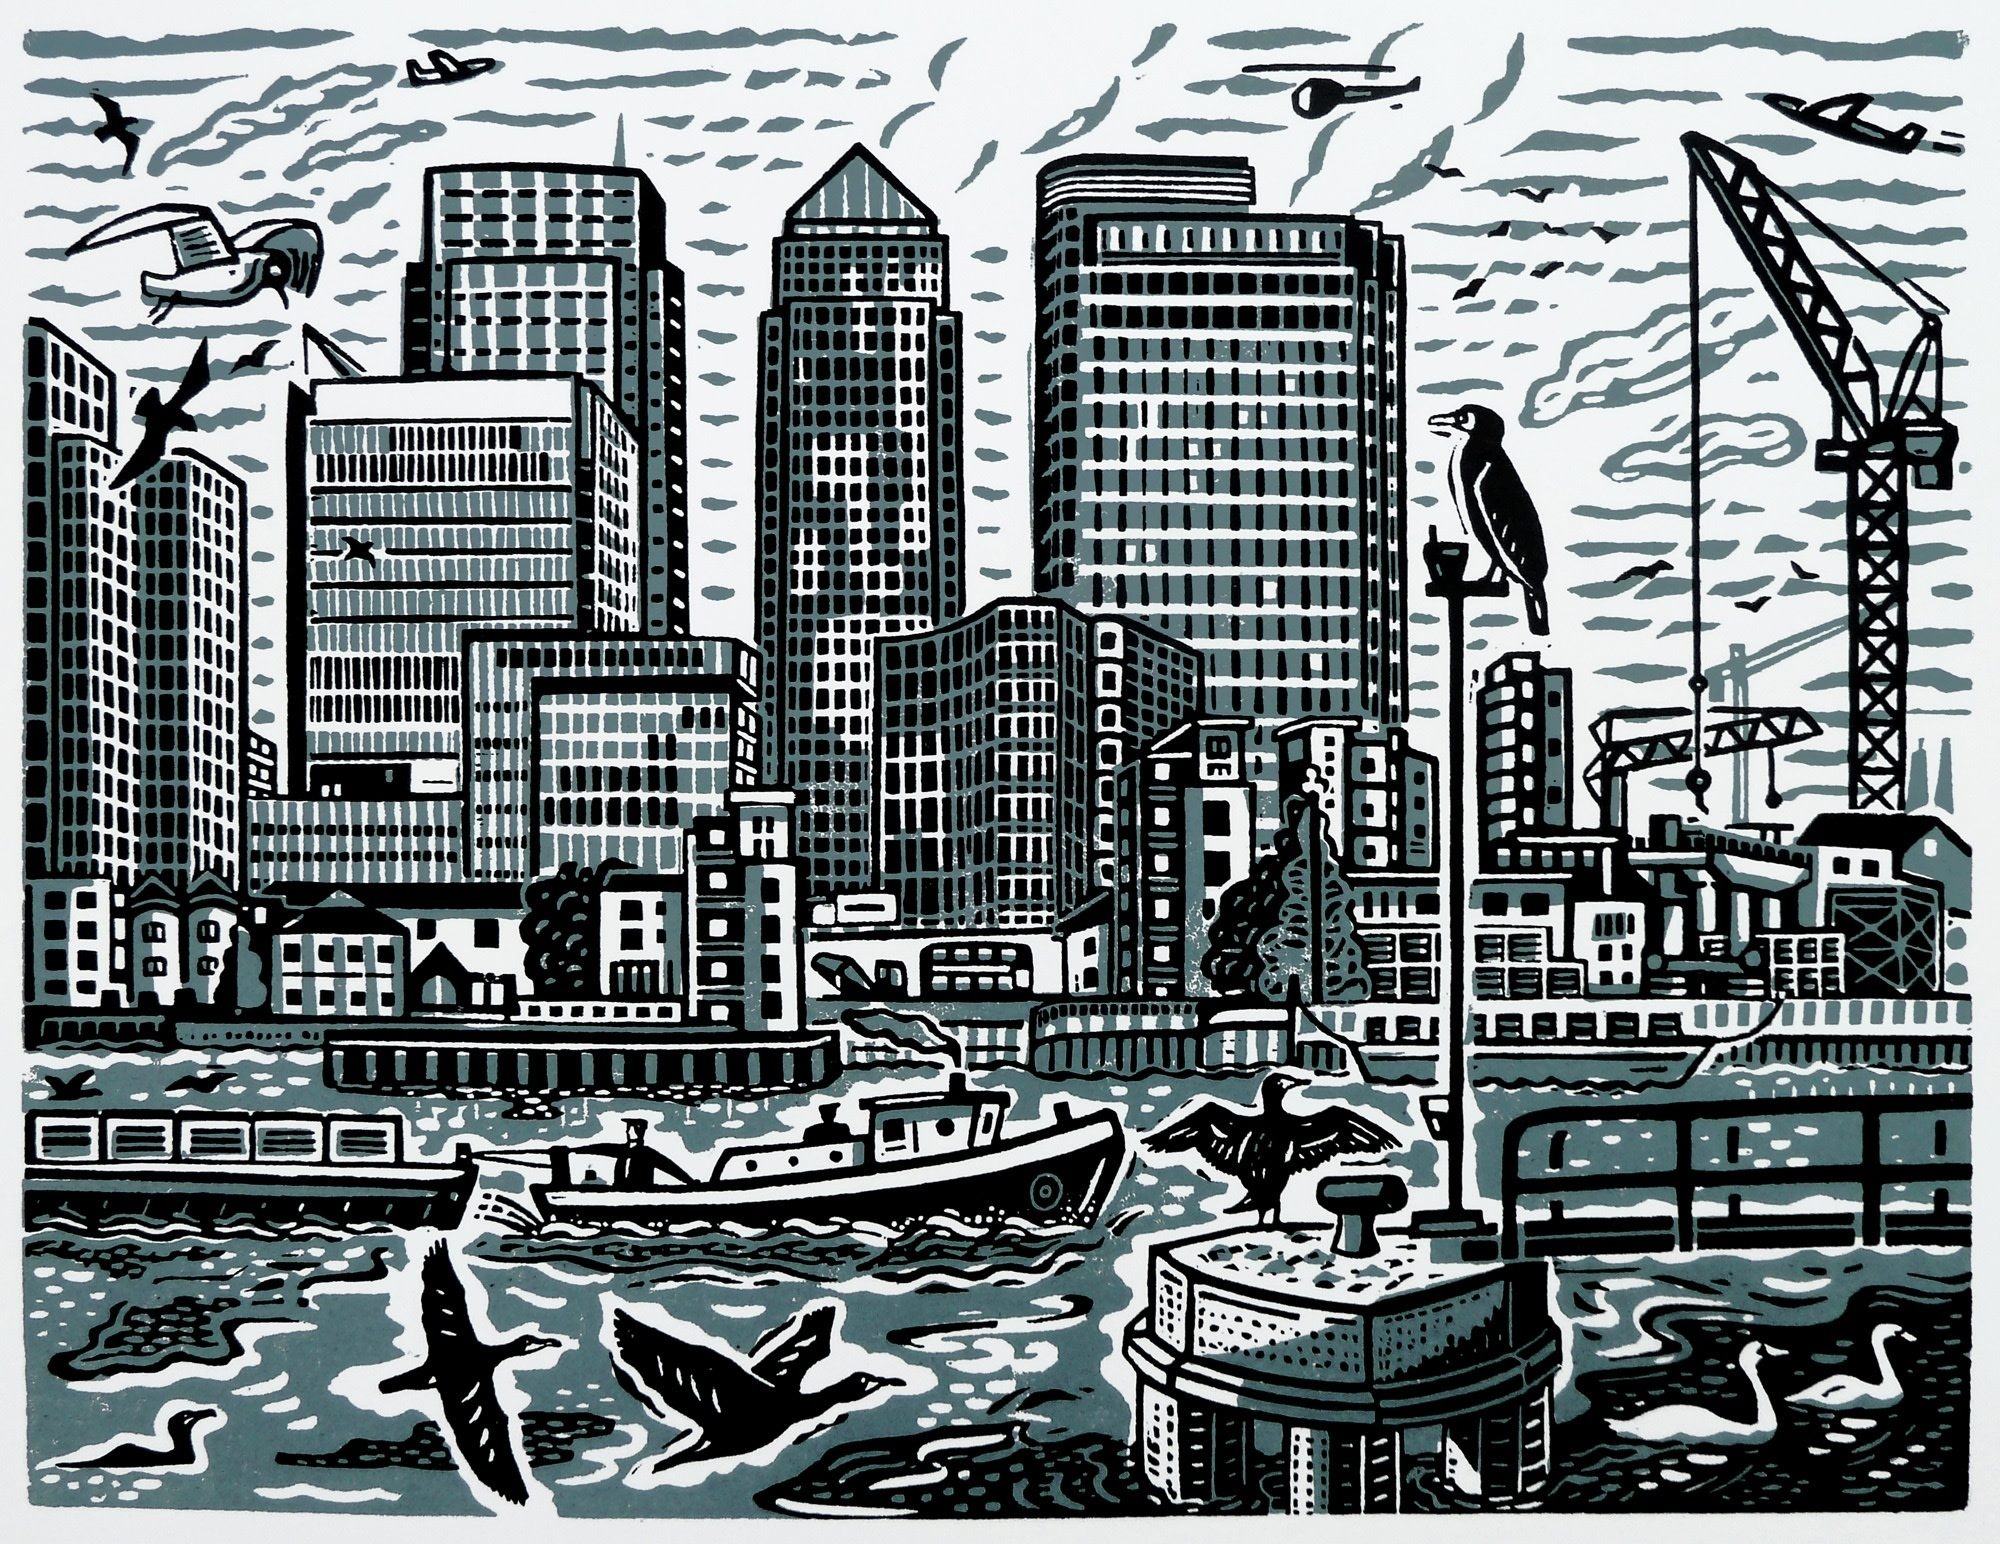 "<span class=""link fancybox-details-link""><a href=""/exhibitions/18/works/image_standalone952/"">View Detail Page</a></span><p>Mick Armson</p><p>Cormorant & Canary</p><p>linocut</p><p>47 x 41cm</p><p>£295 framed</p><p>£195 unframed</p><p> </p>"